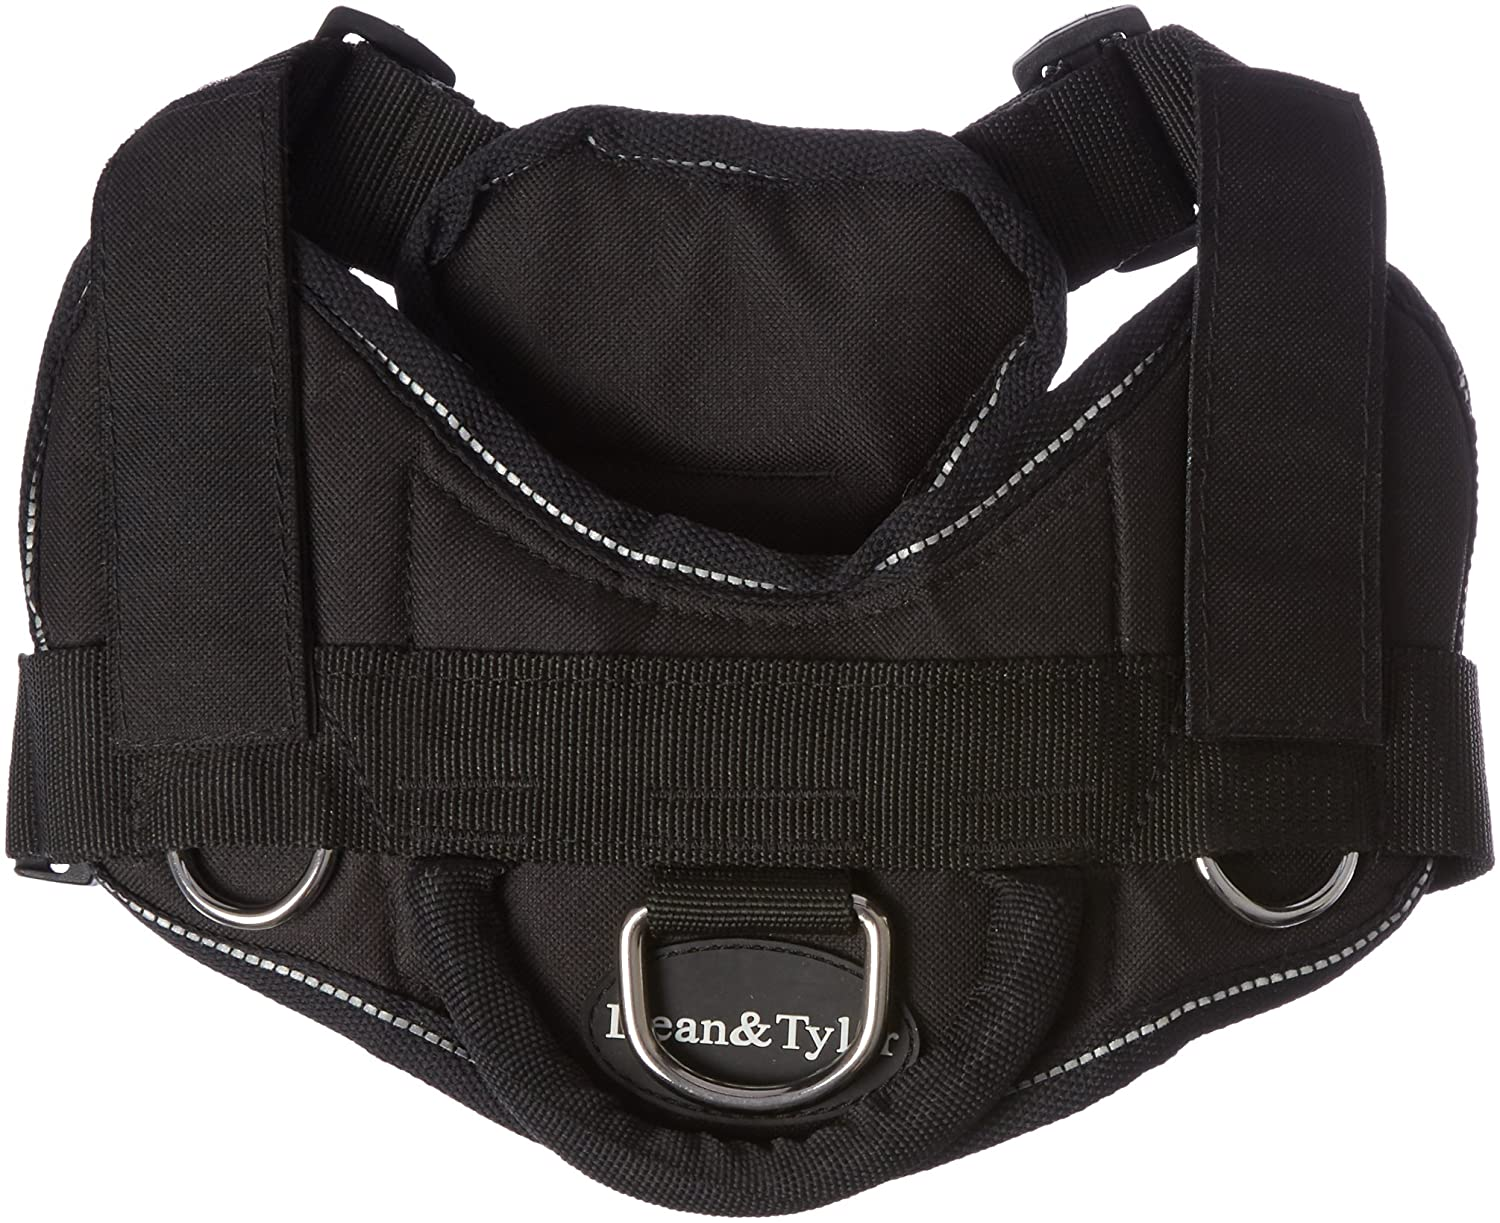 Dean & Tyler DT Fun Seizure Alert Service Dog  Dog Harness with Padded Chest Piece, Fits Girth Size 22-Inch to 27-Inch, Small, Black with Reflective Trim